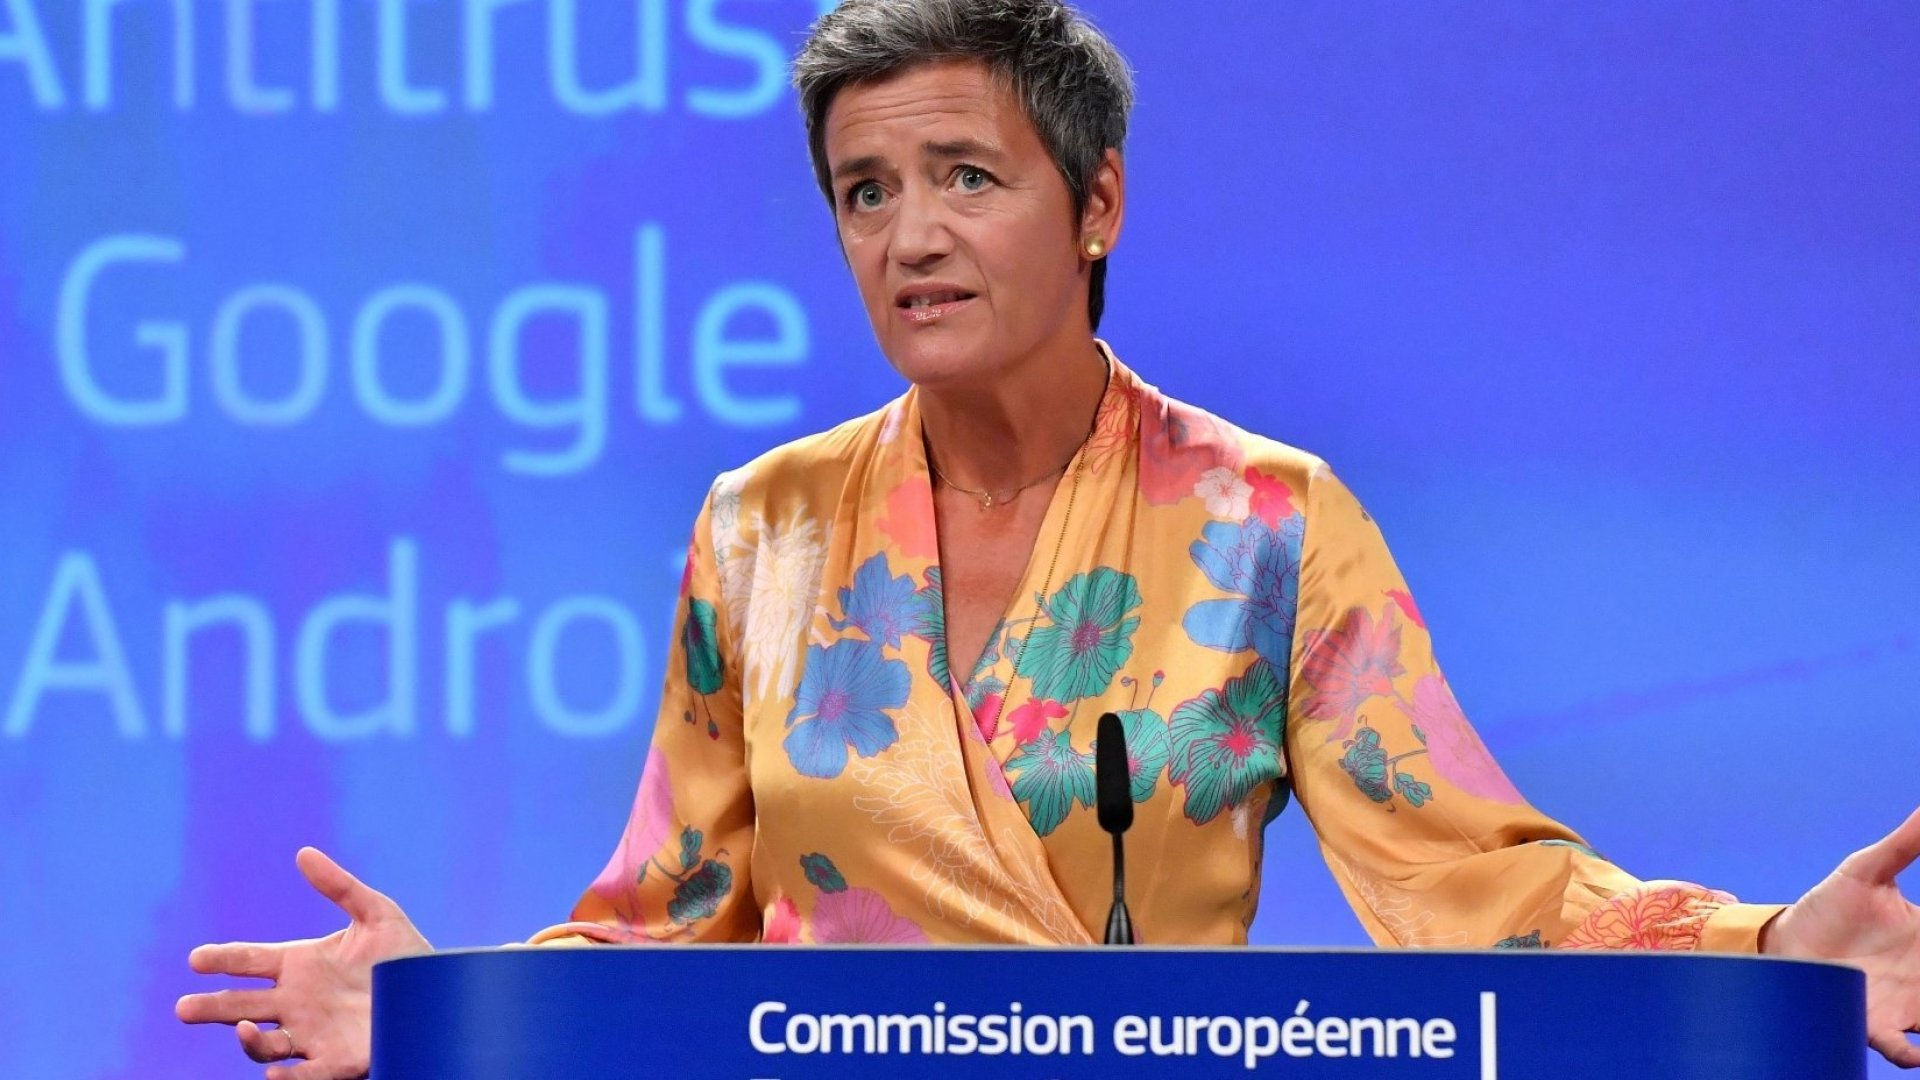 Google Was Fined $1.7 Billion for Ad Practices Violating European Antitrust Laws